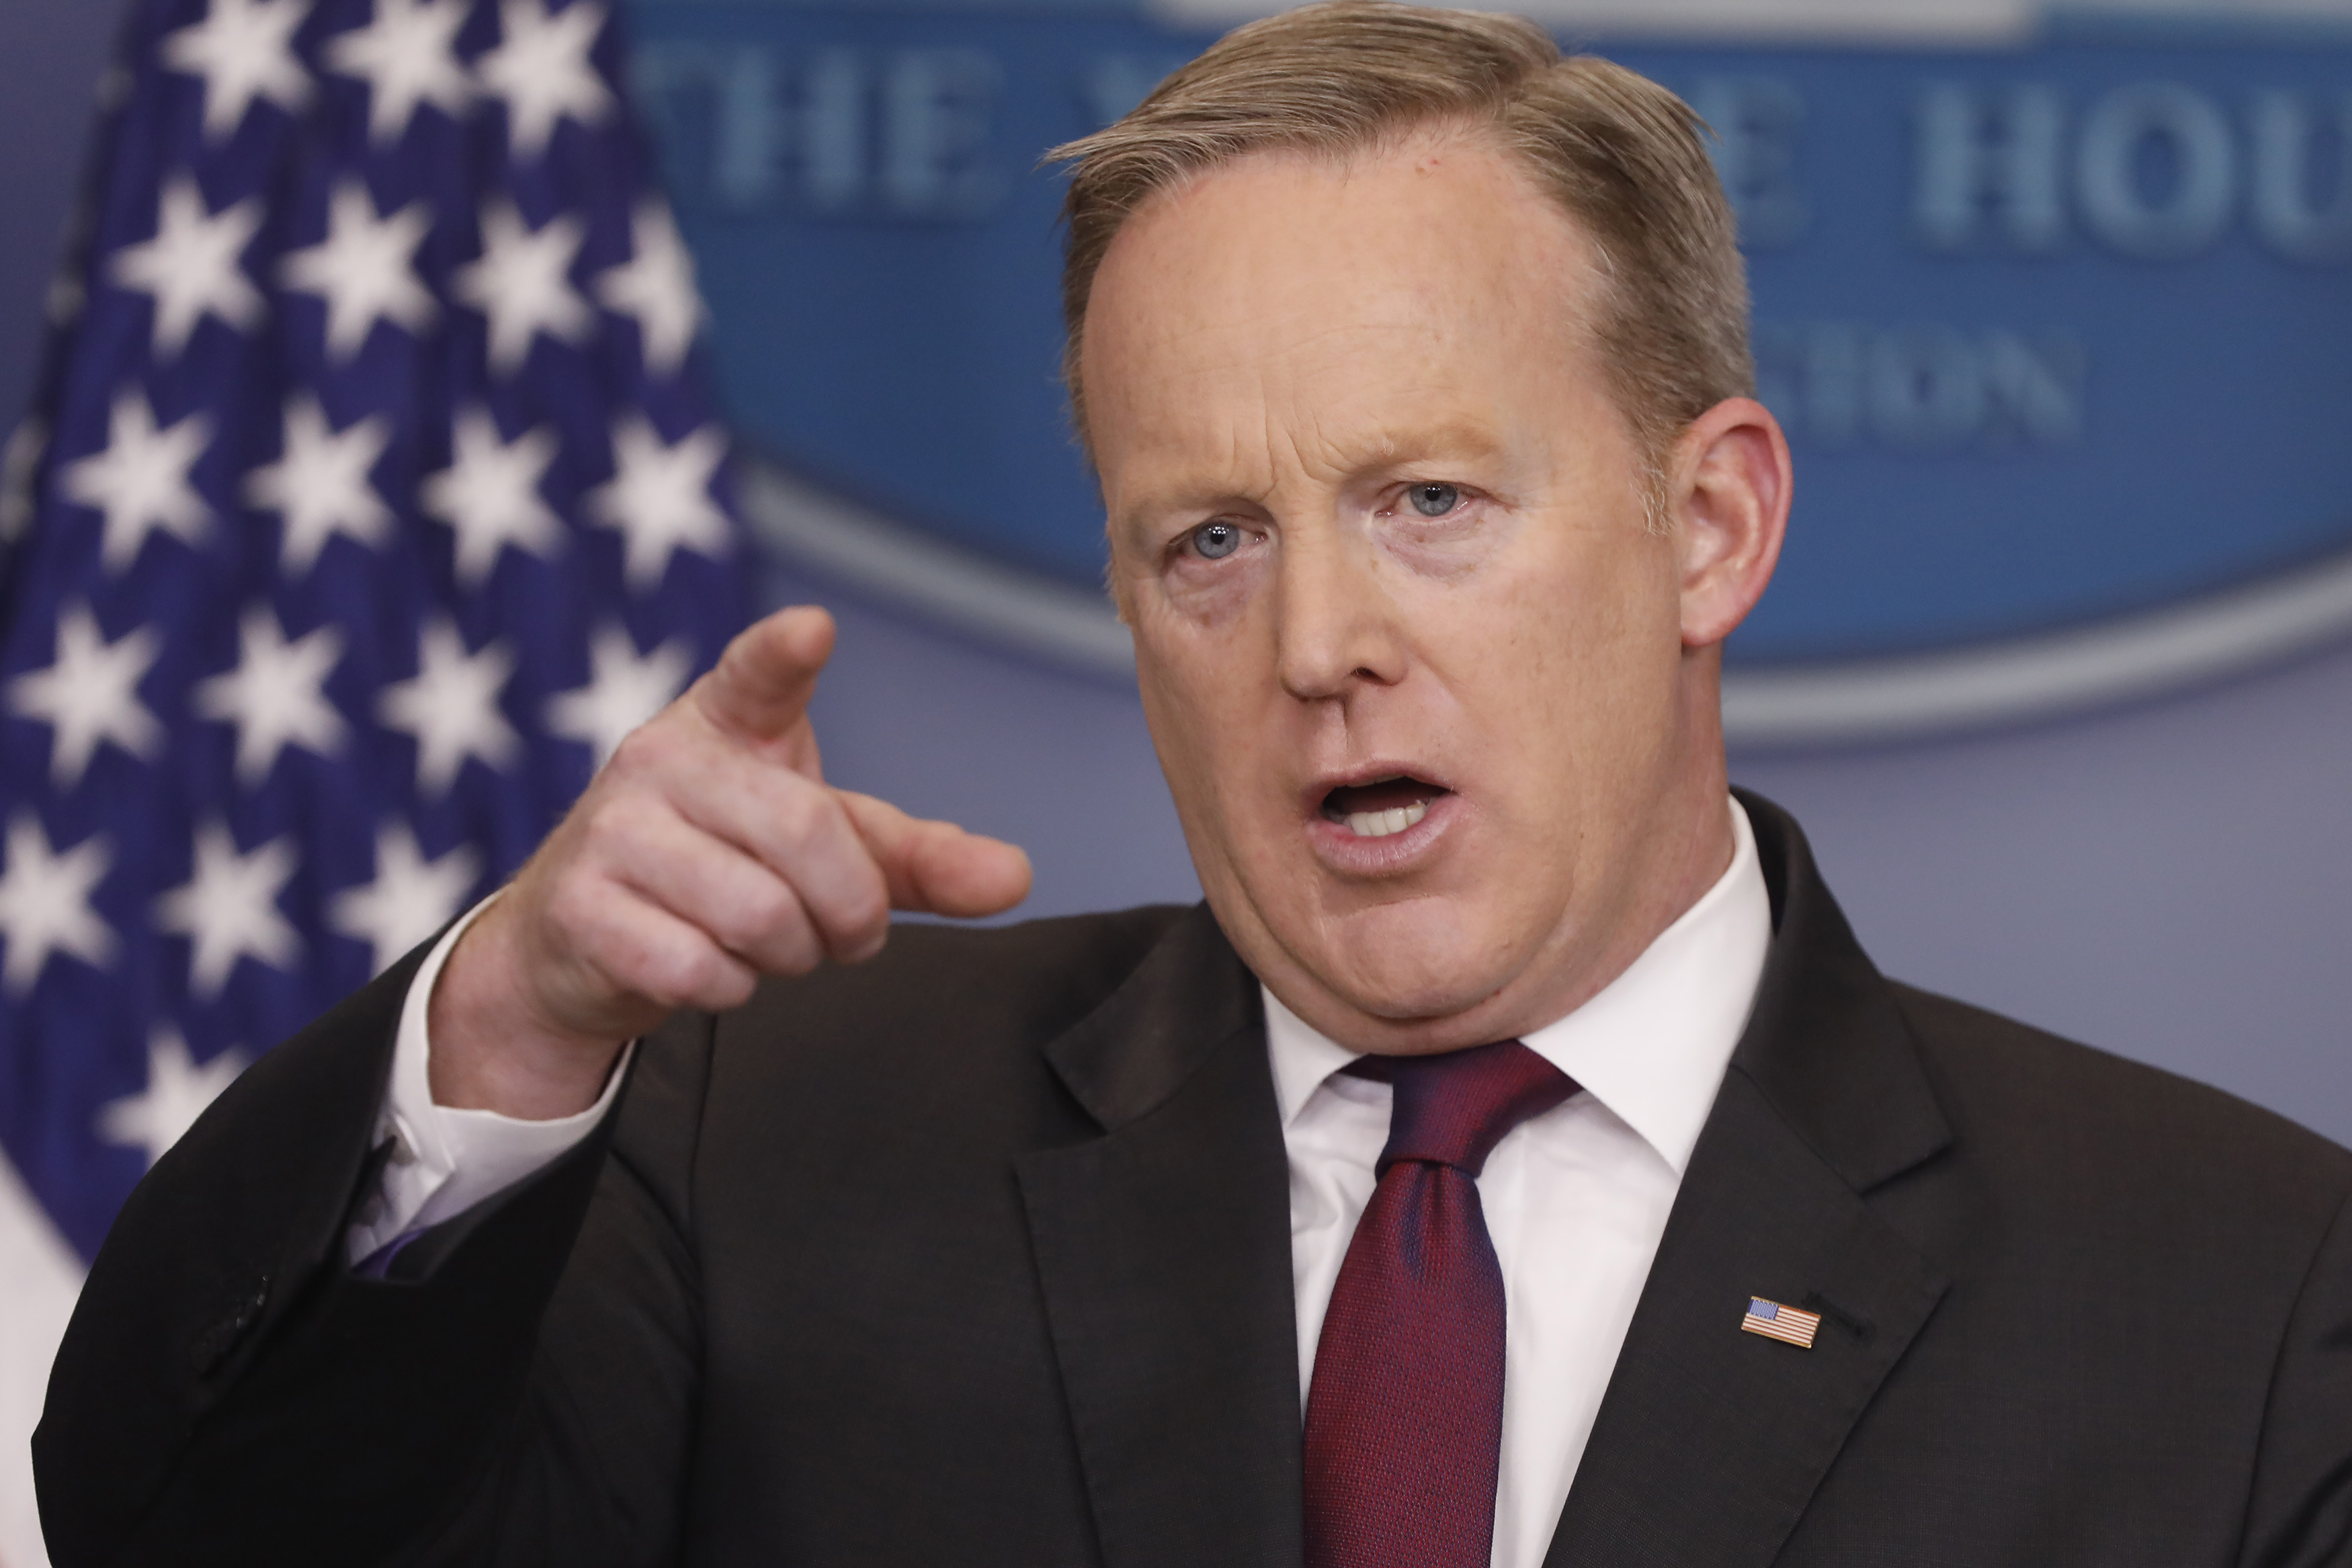 Press Secretary Sean Spicer Holds Daily Press Briefing